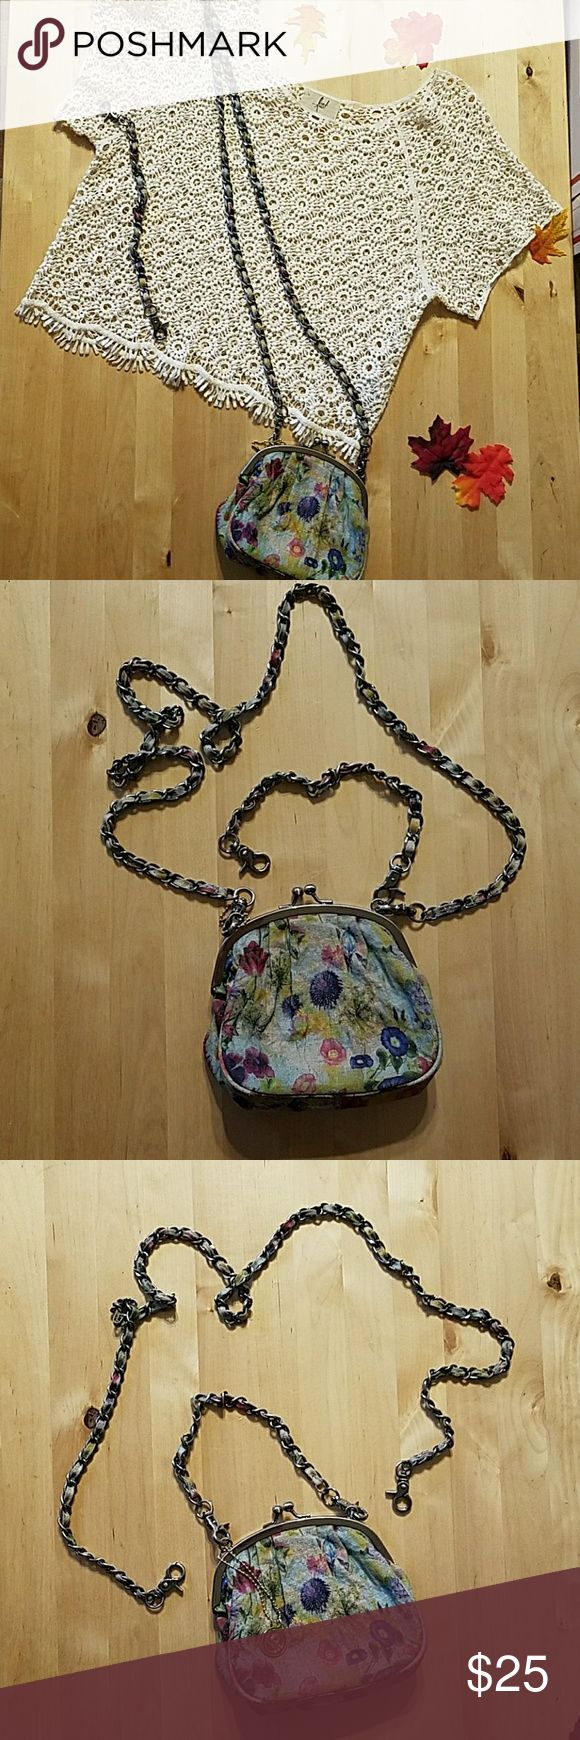 "Big Buddha floral fabric pruse Big Buddha Santa Barbara floral fabric with two length straps with sturdy claw closures. The chain strap has fabric interwoven into the links that gives this a unique look.  Body is 60% Cotton 40% Linen Lining 100% Polyester Approximate measurements shown in pics 7""×5.5""×1 5""  strap drops 23"" & 5"" Big Buddha Bags"